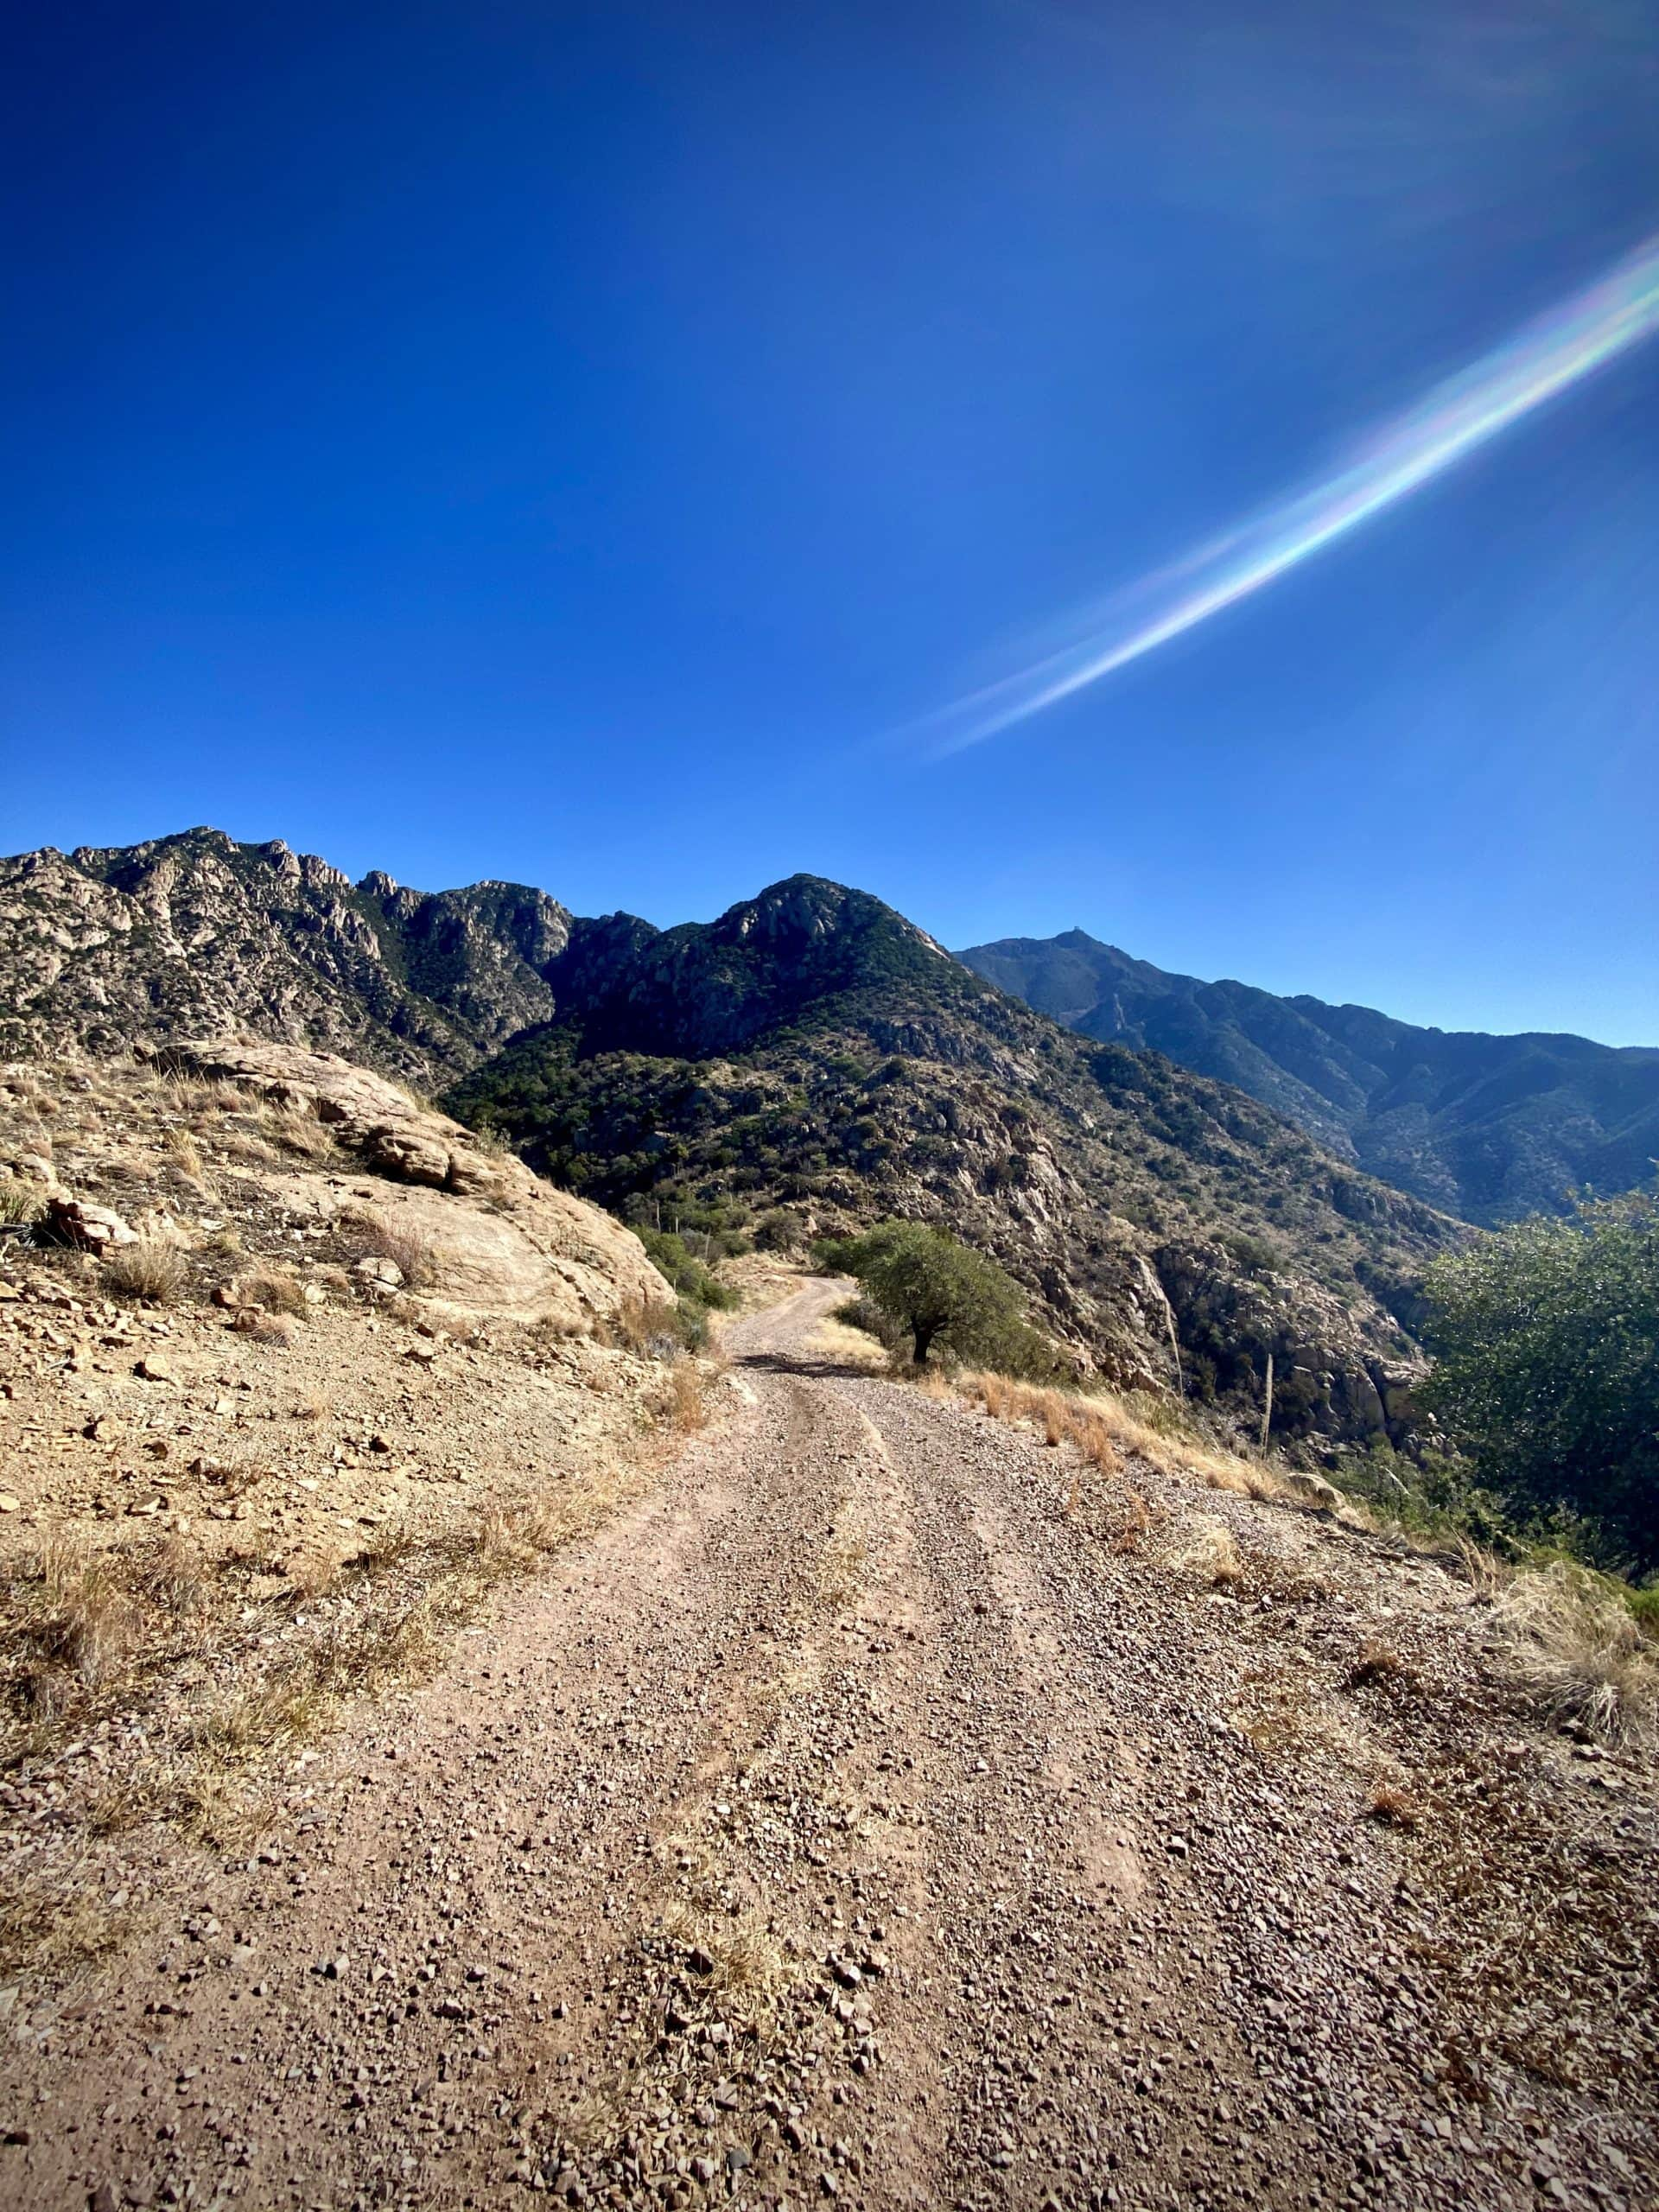 The road and descent leading back down from the antennas in the Santa Rita mountains.